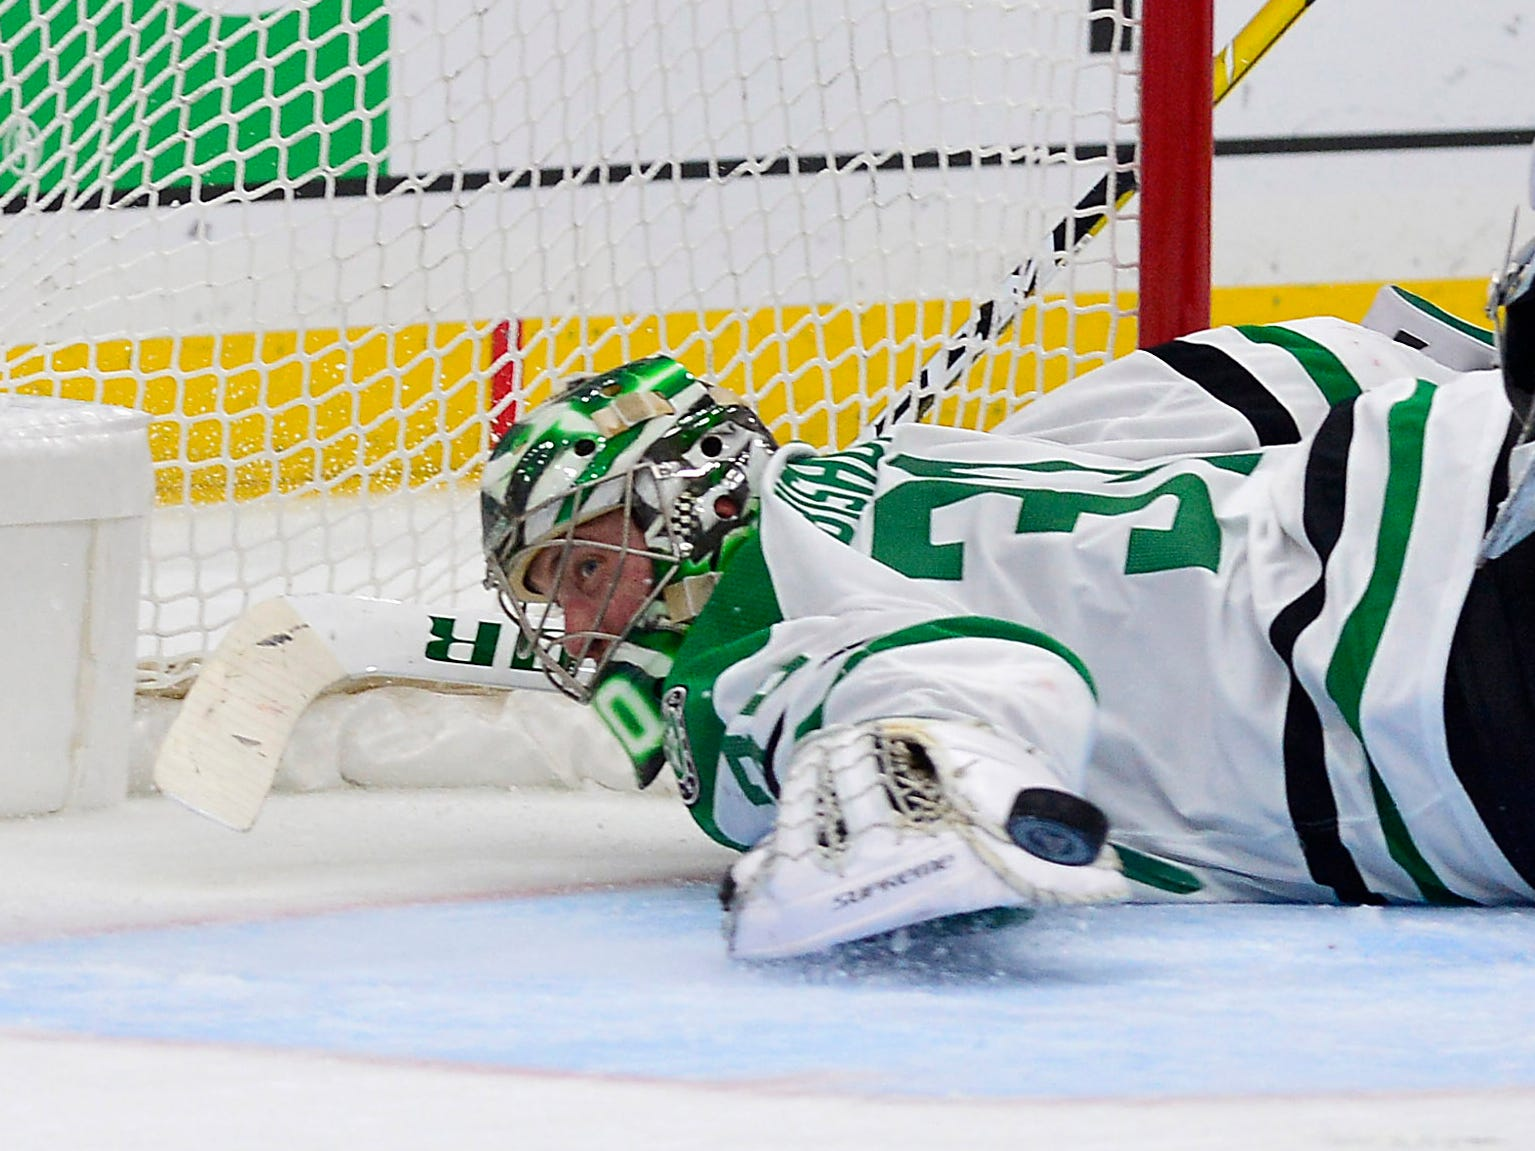 Second round: Stars goaltender Ben Bishop deflects the puck away from the net during the second period in Game 2 against the Blues.